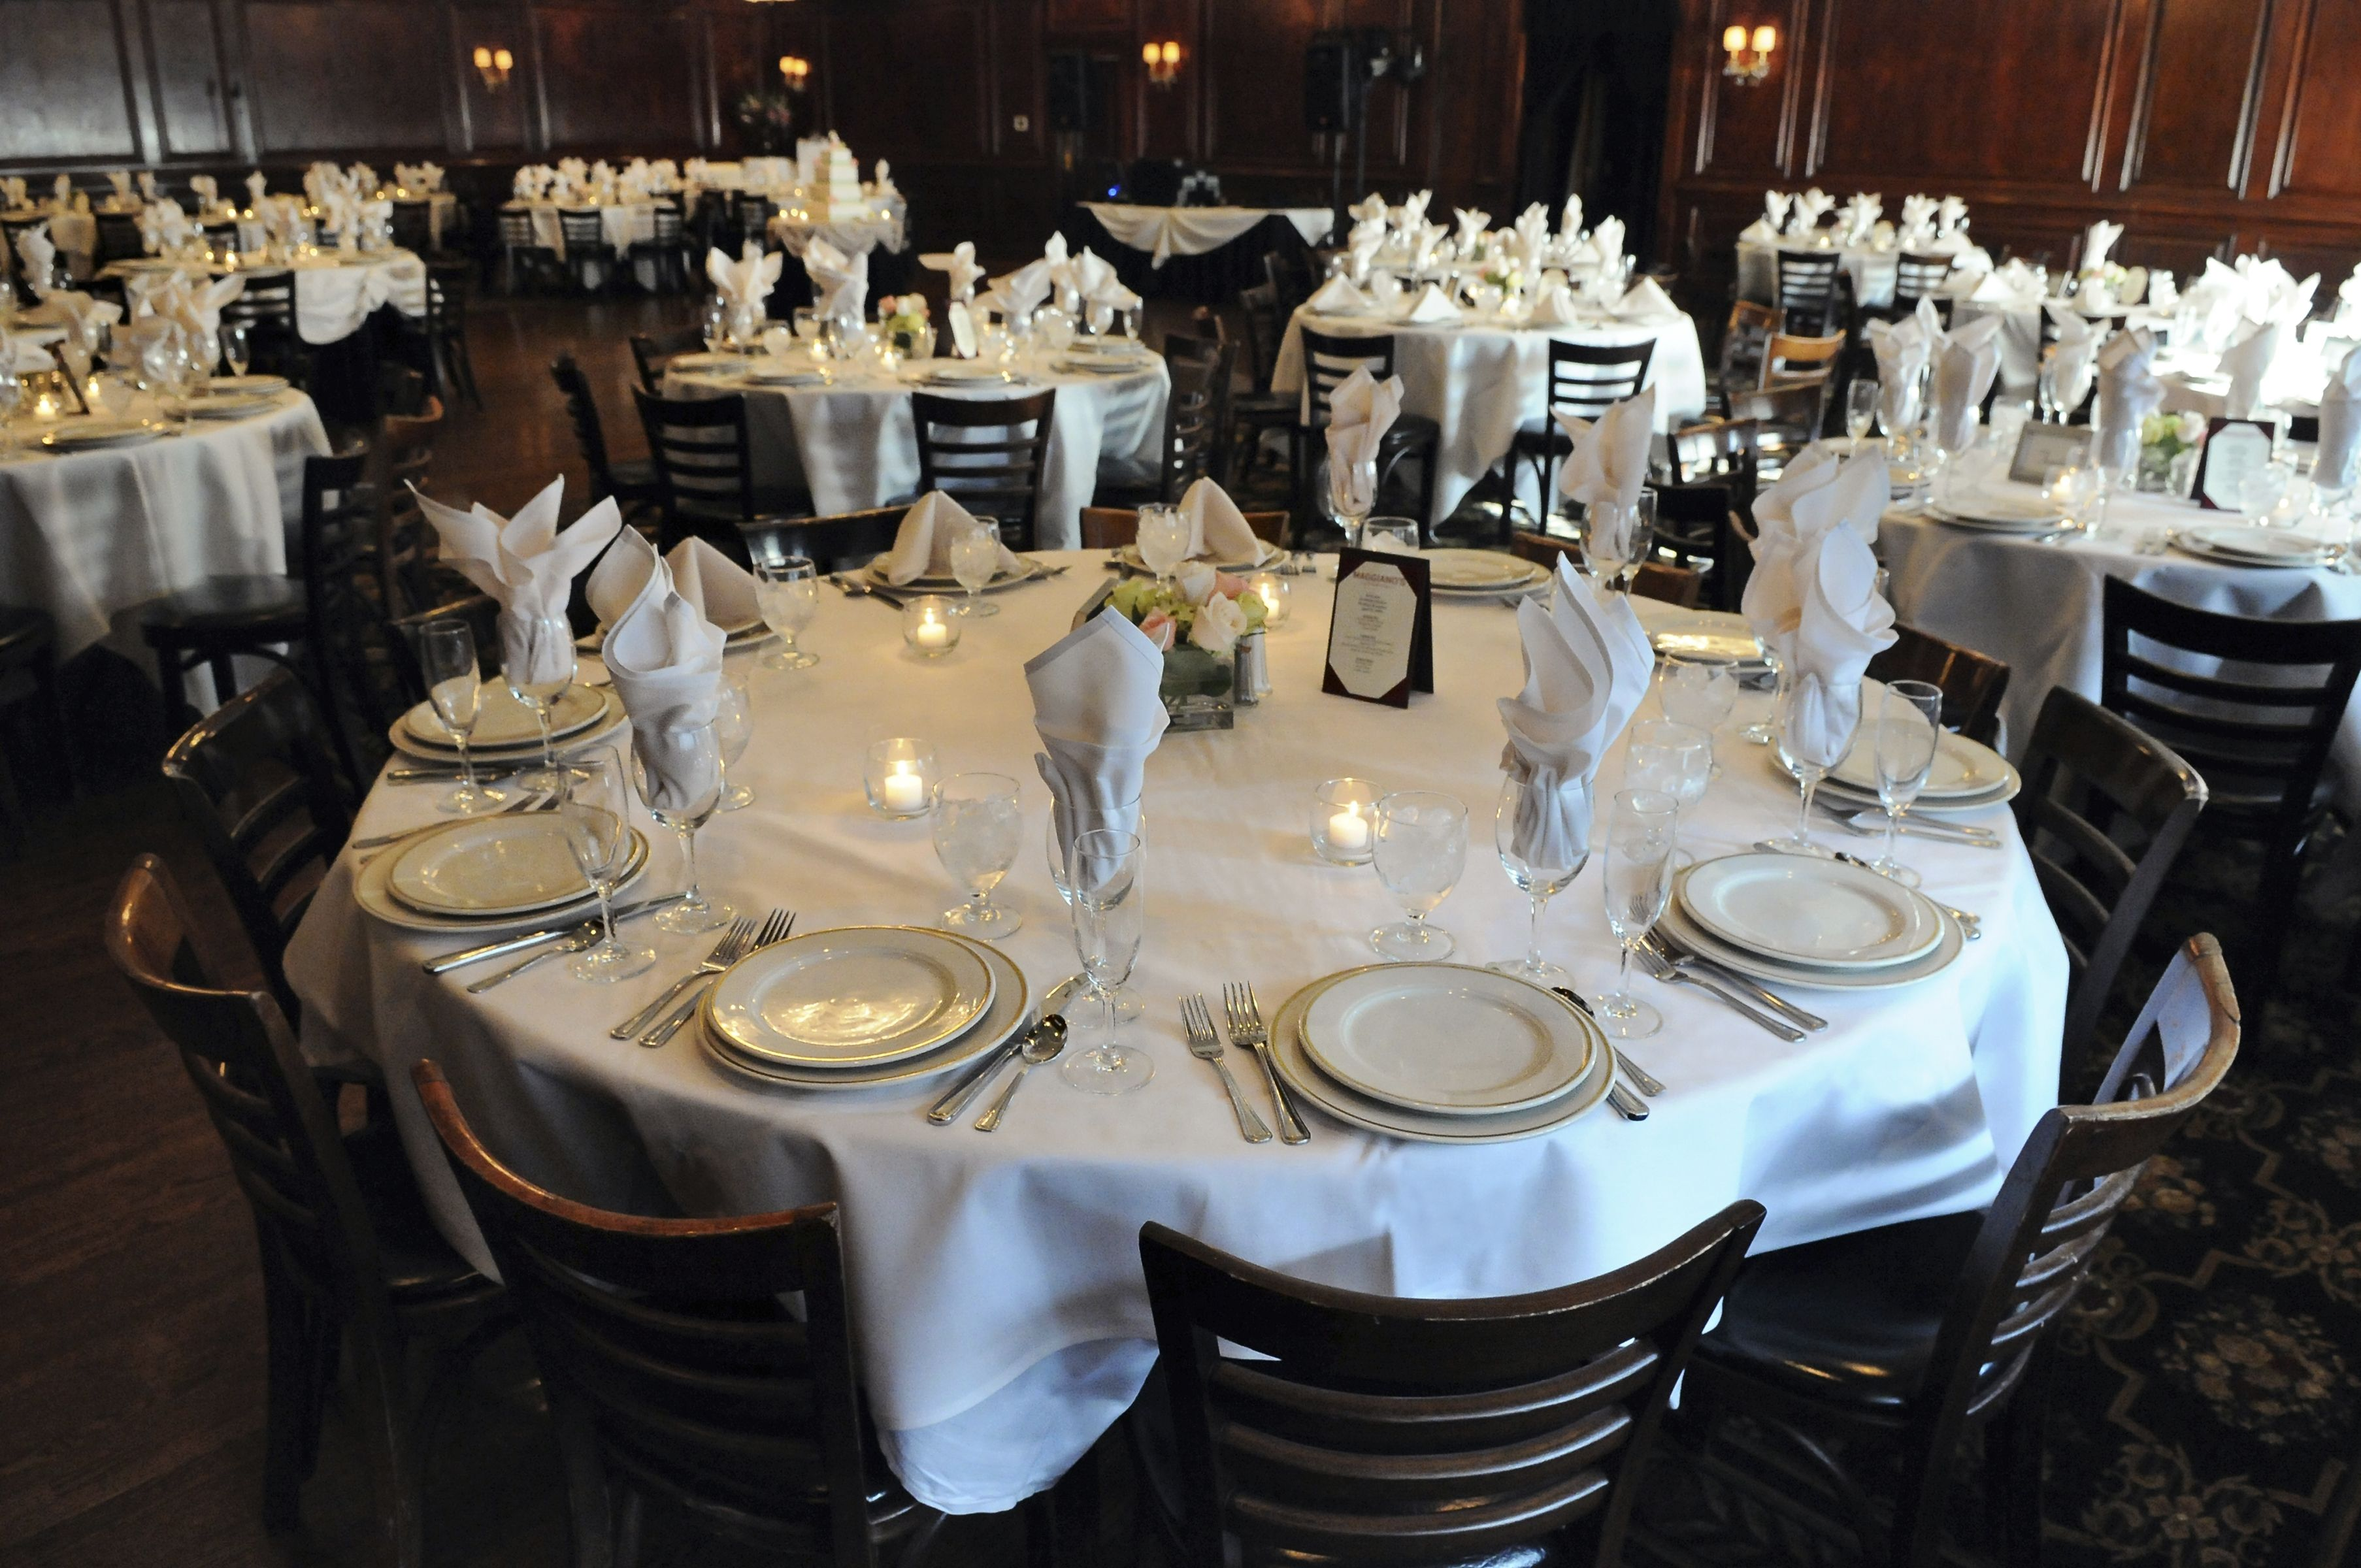 Banquet Style Table Setting & Breathtaking Banquet Style Table Setting Gallery - Best Image Engine ...